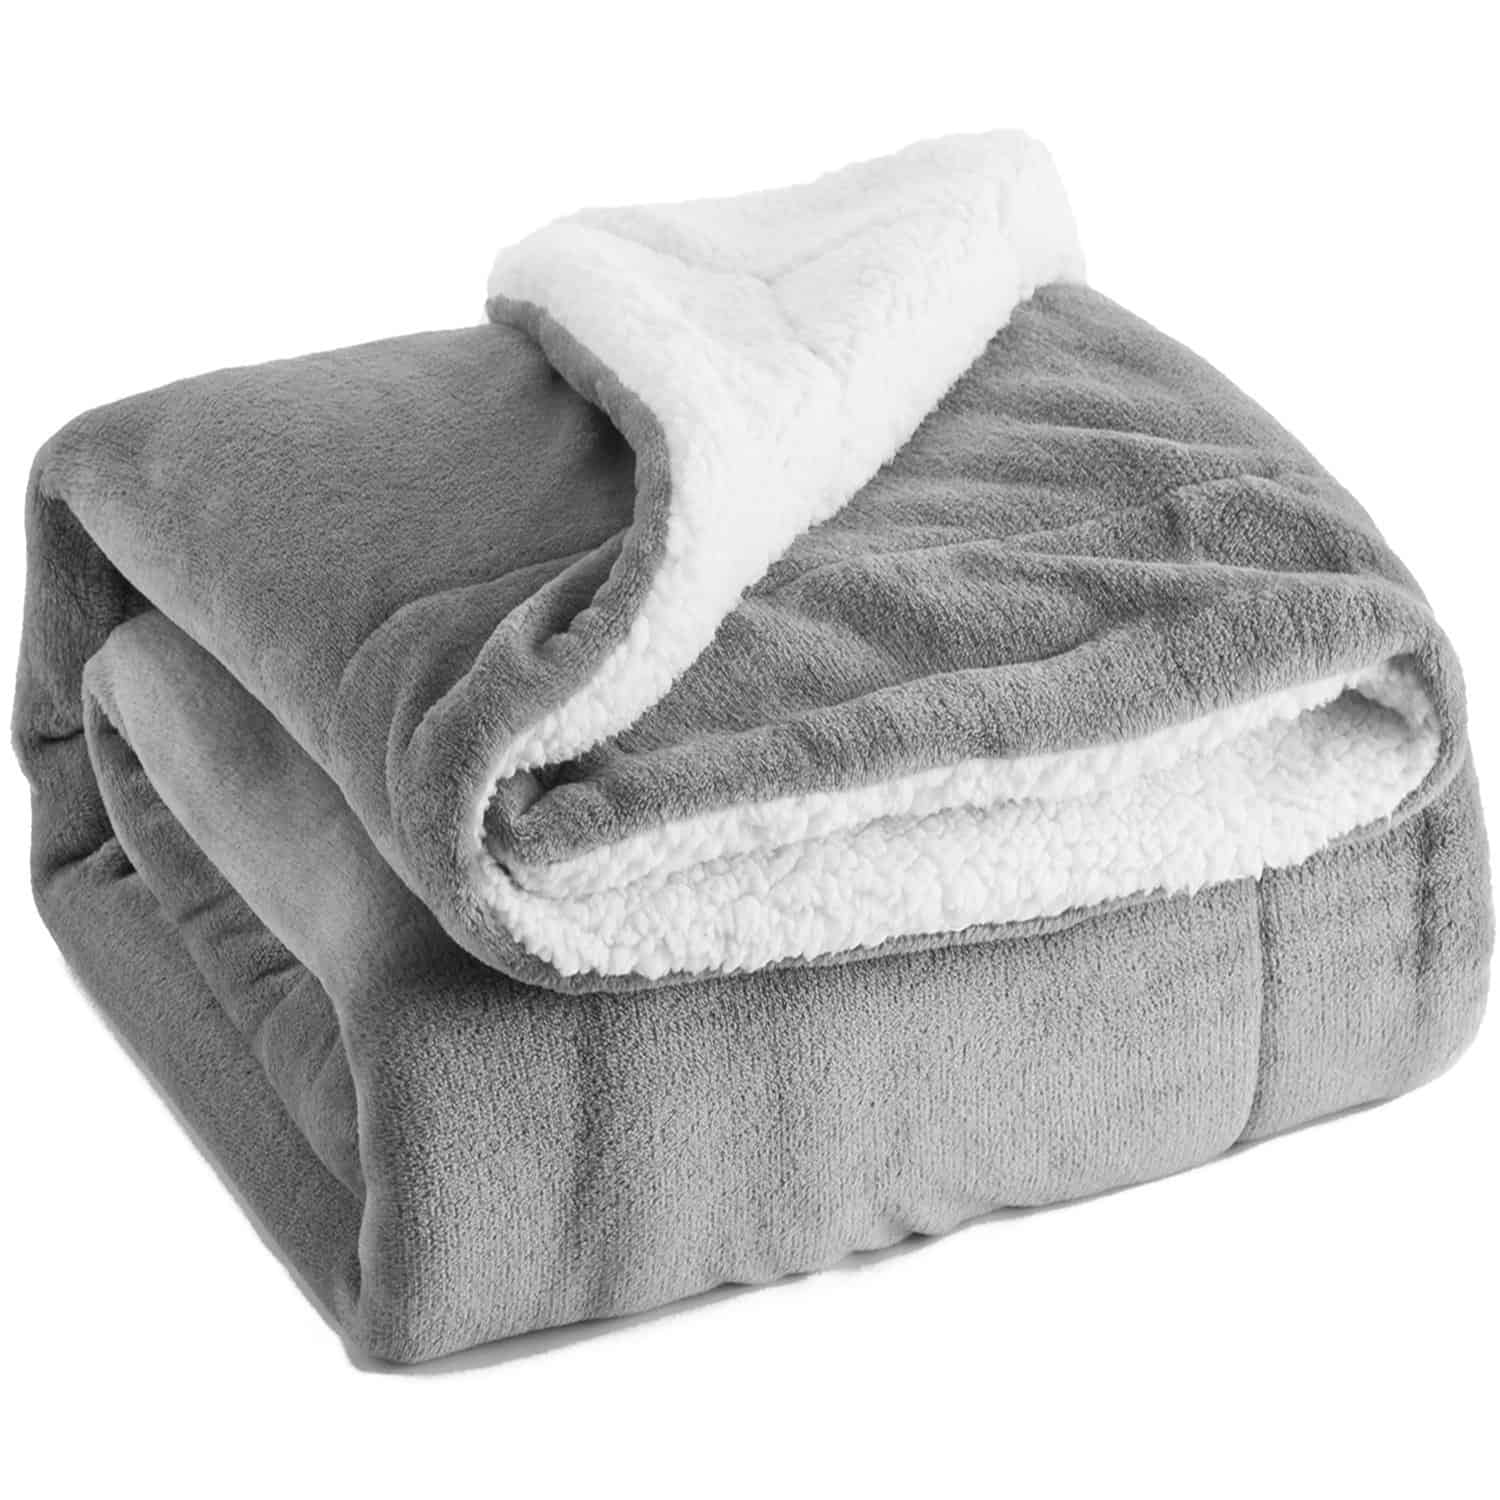 Cozy Sherpa throw is perfect for Fall snuggles on the couch.